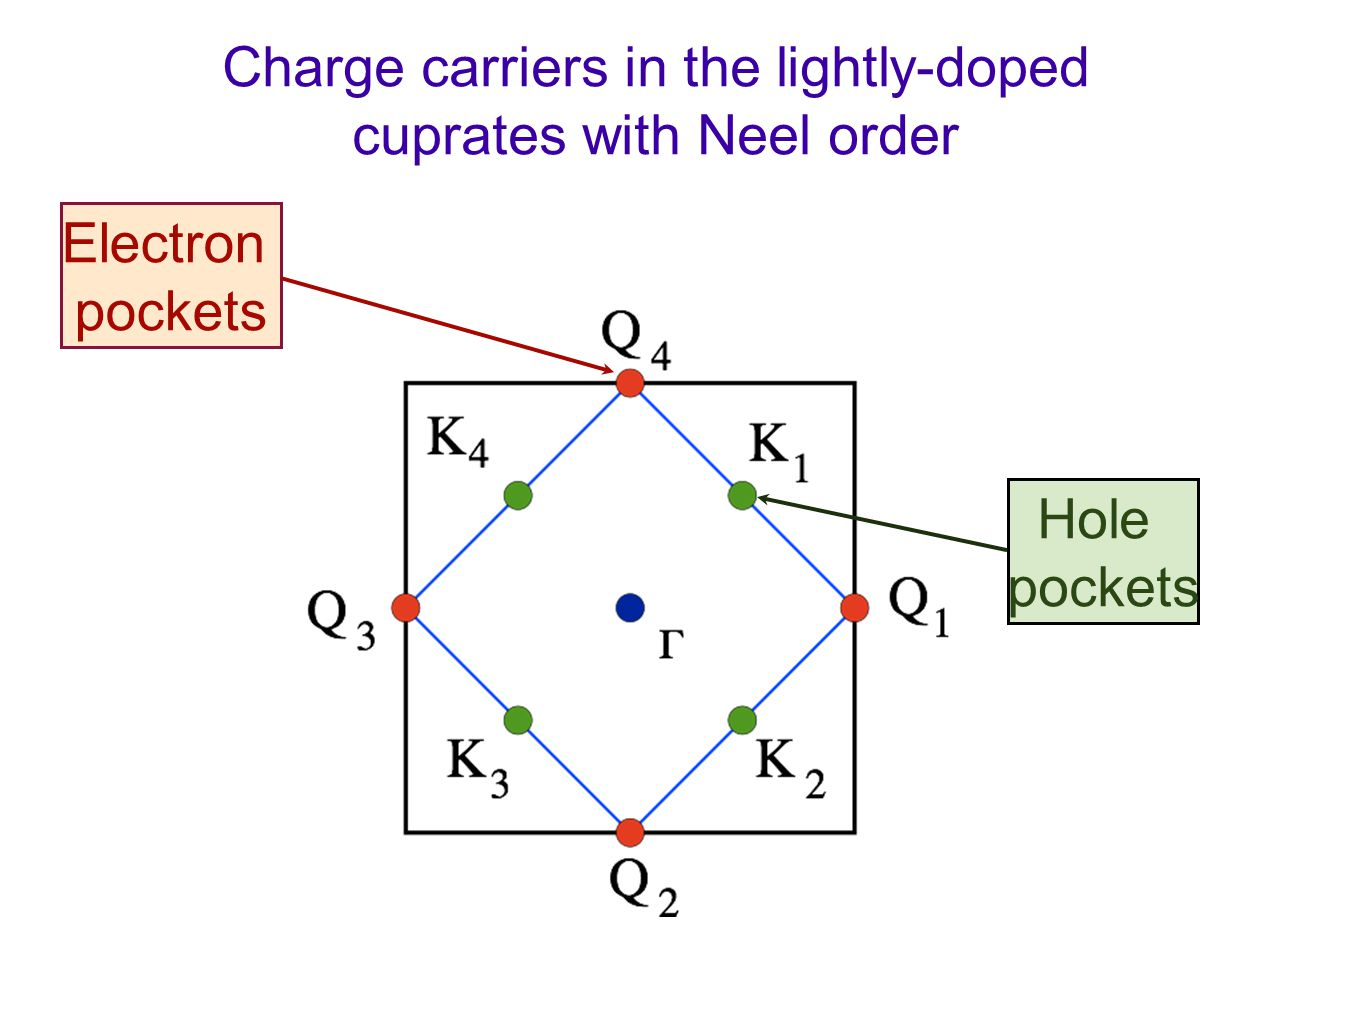 Charge carriers in the lightly-doped cuprates with Neel order Electron pockets Hole pockets